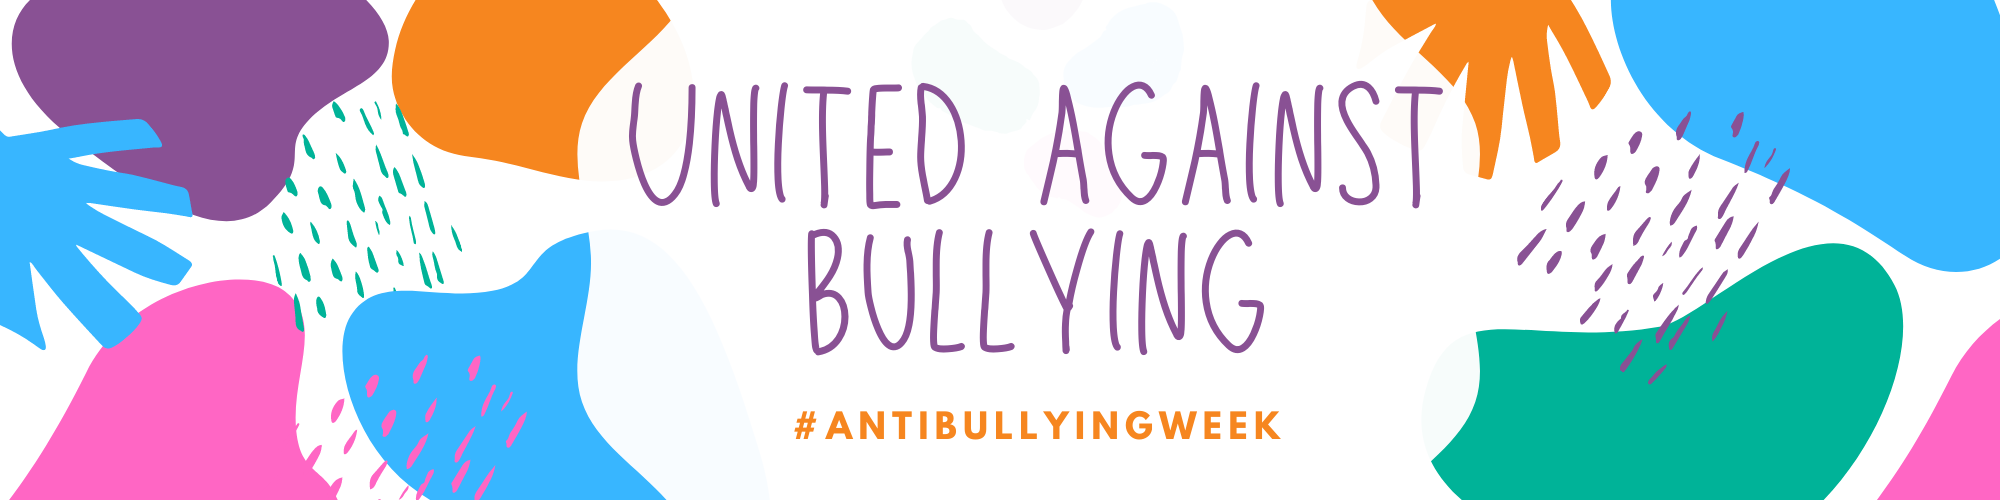 "Multi-coloured image with ""United against bullying, #AntiBullyingWeek"" written in the middle"